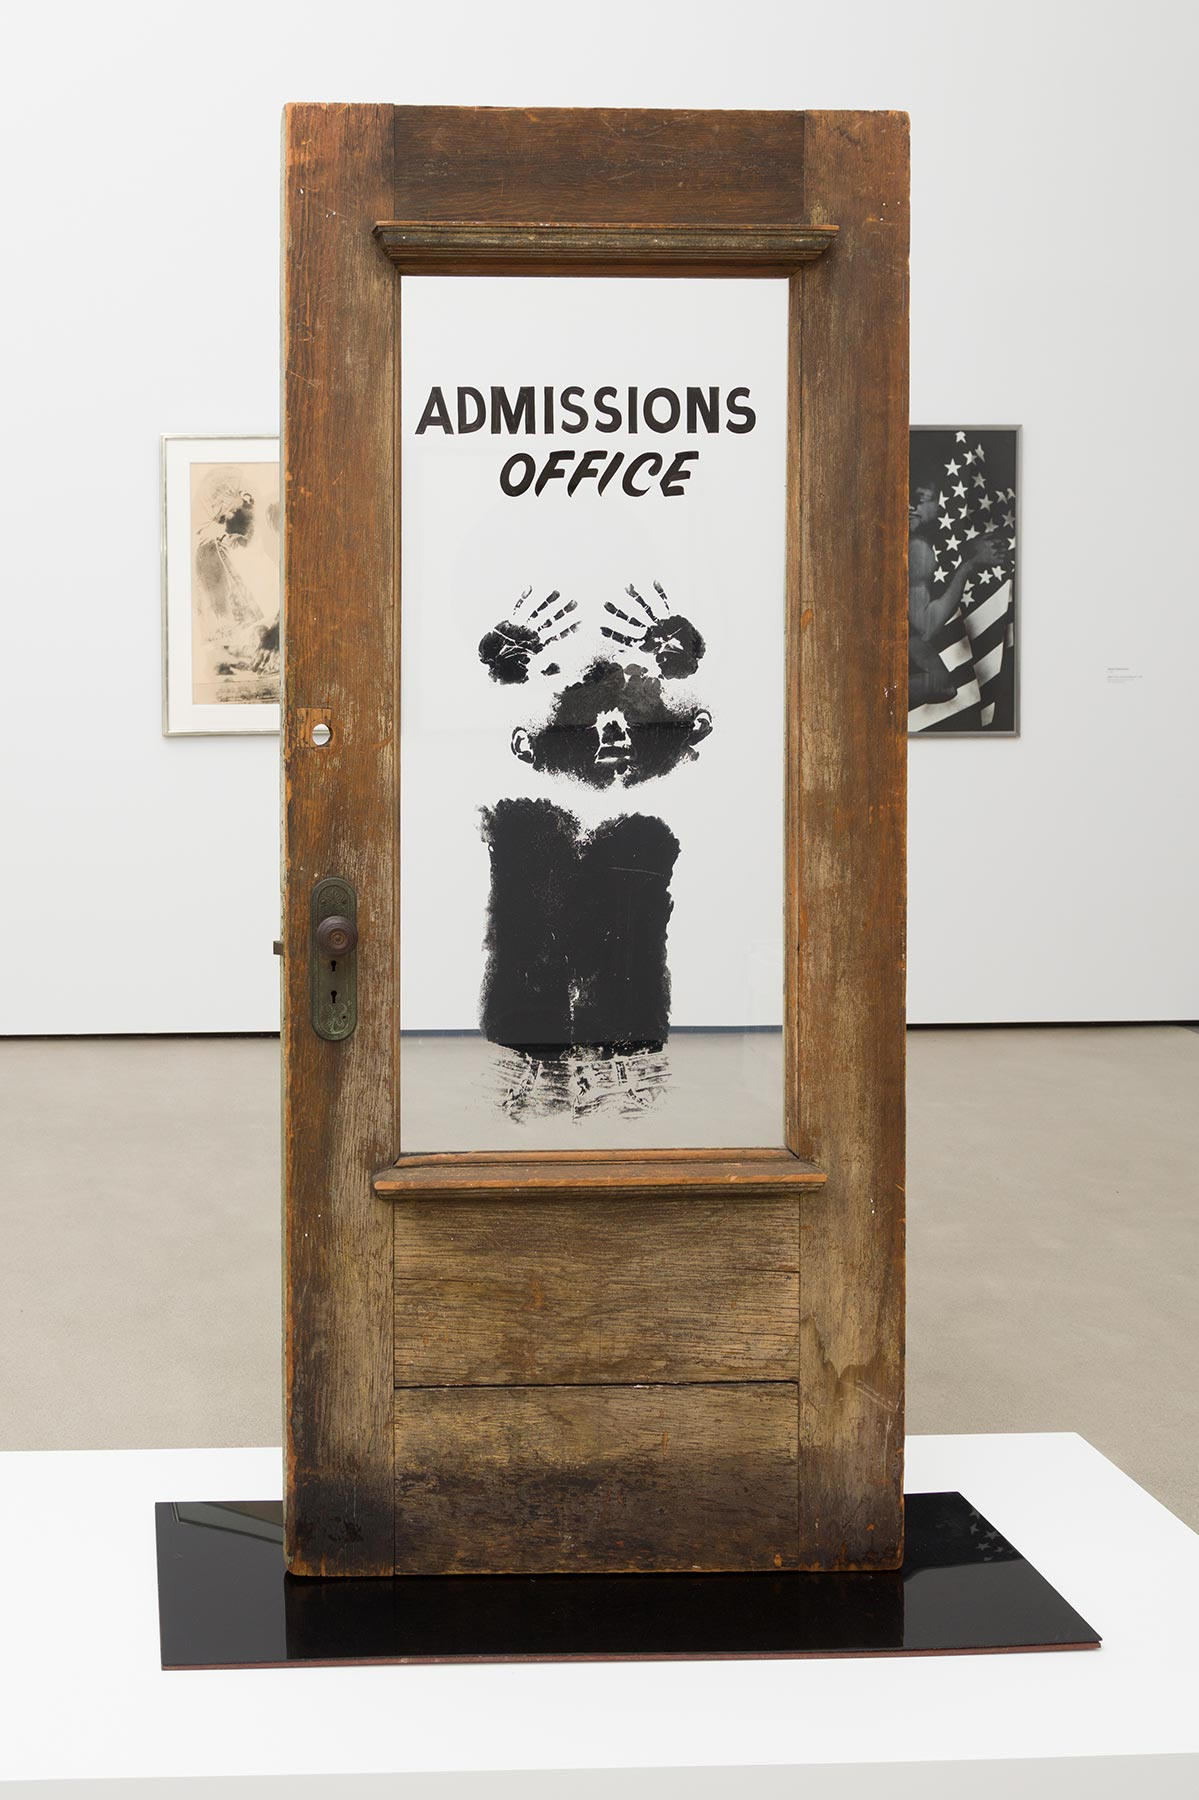 David Hammons, The Door (Admissions Office), 1969 | Pablo Enriquez, Courtesy of the Broad